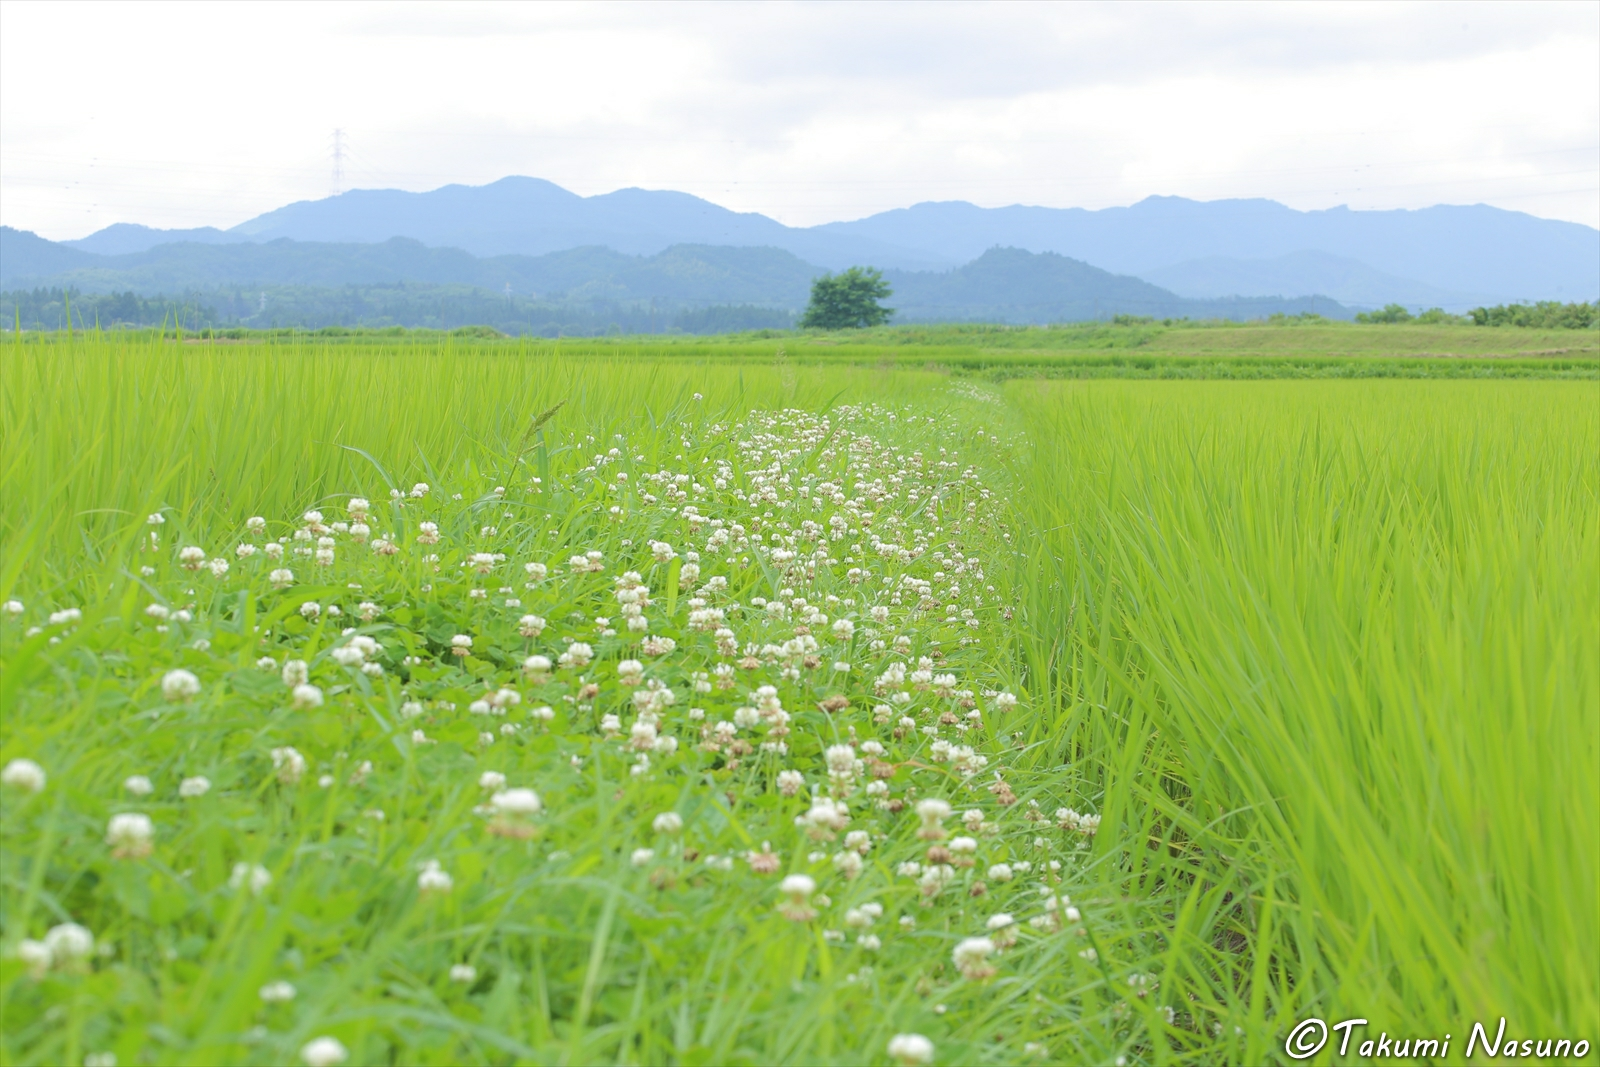 White Clover at Footpath between Paddy Fields of Tanagura Town